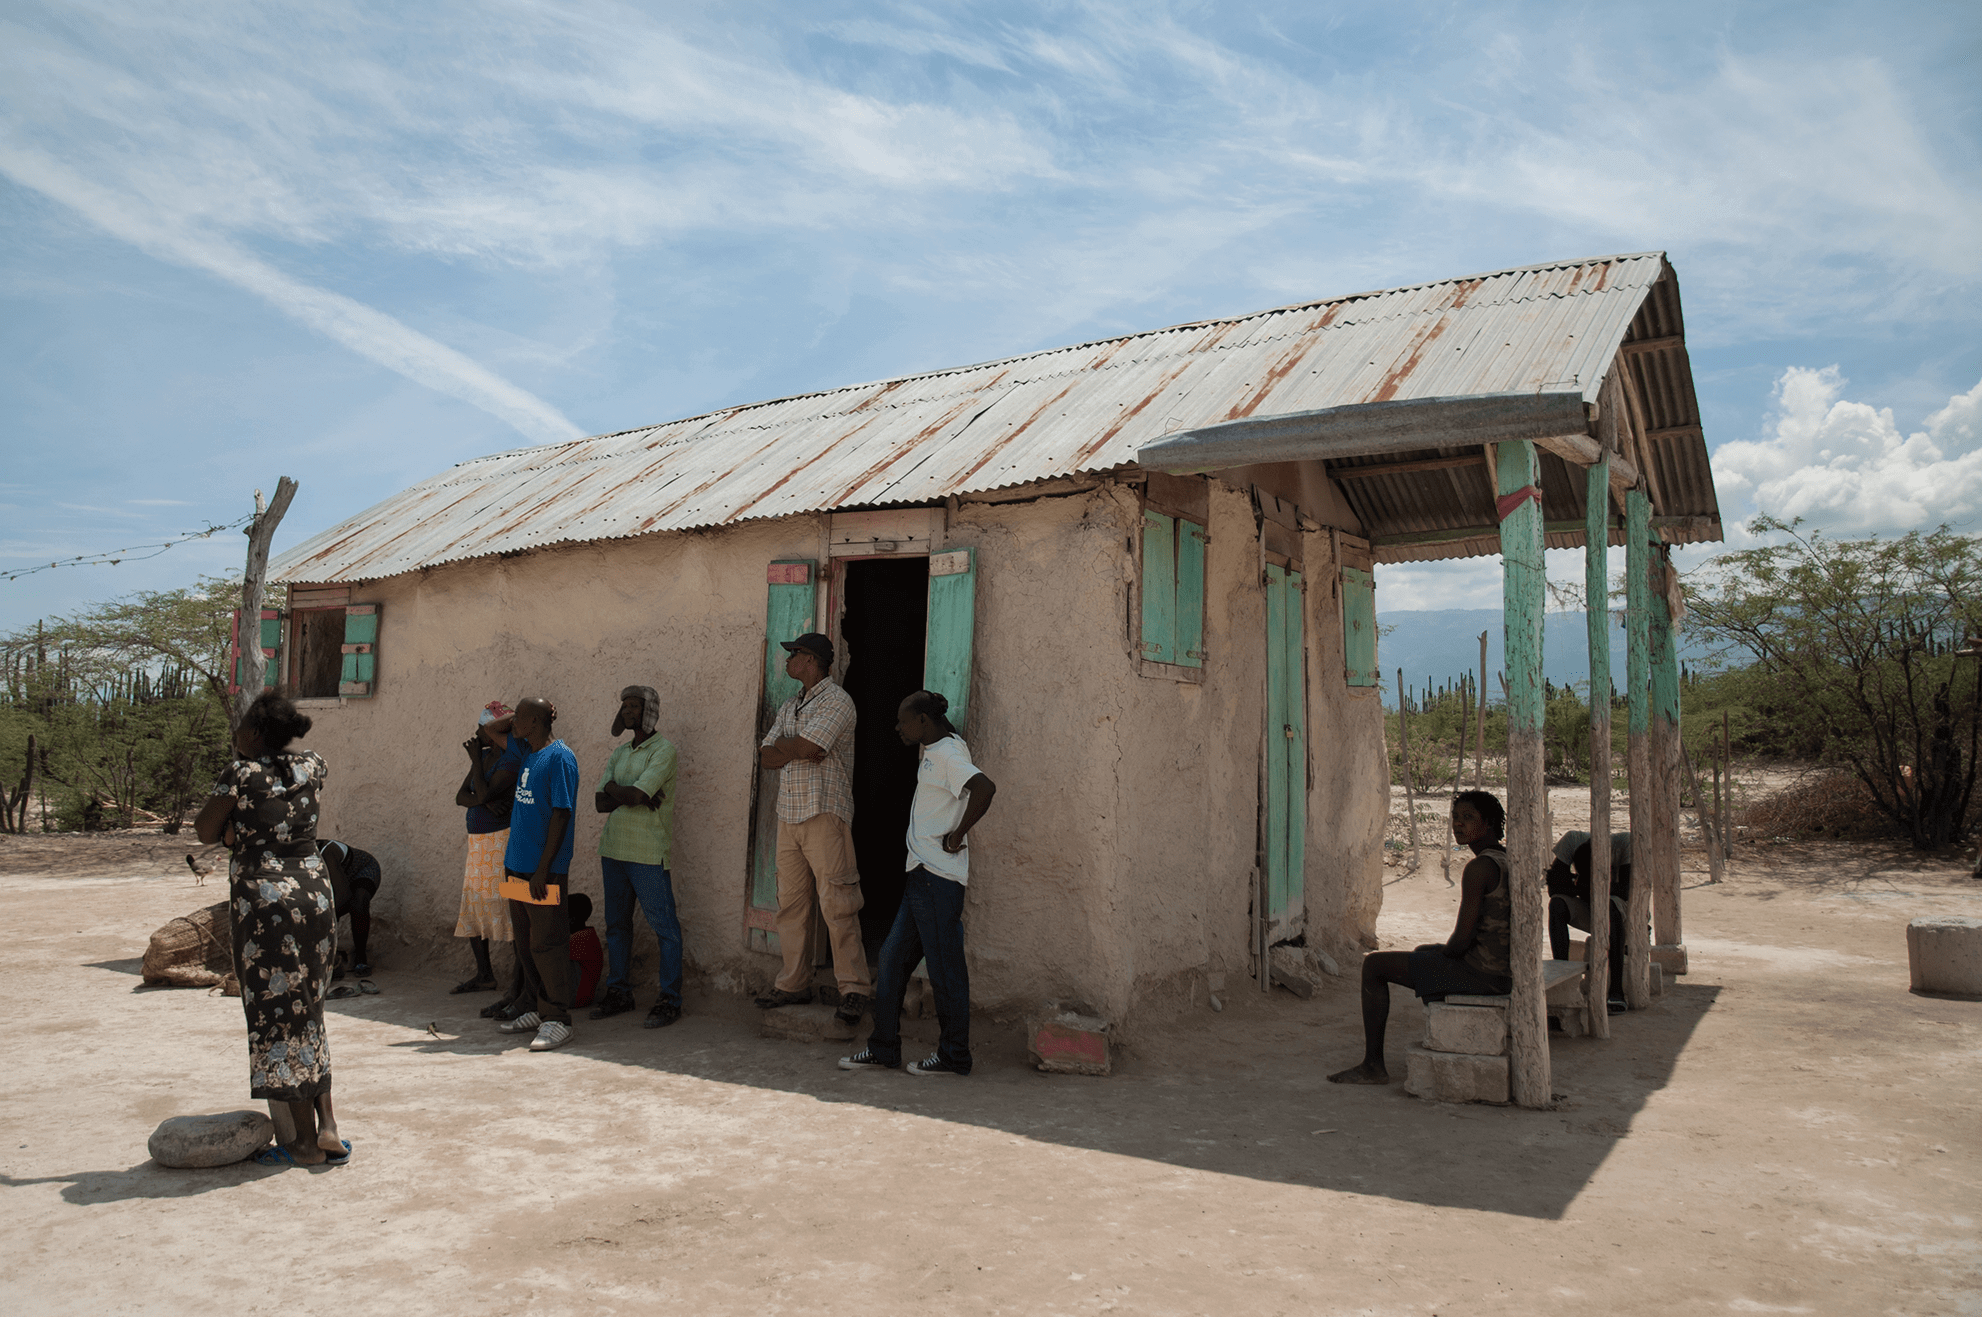 Villagers in need in Haiti